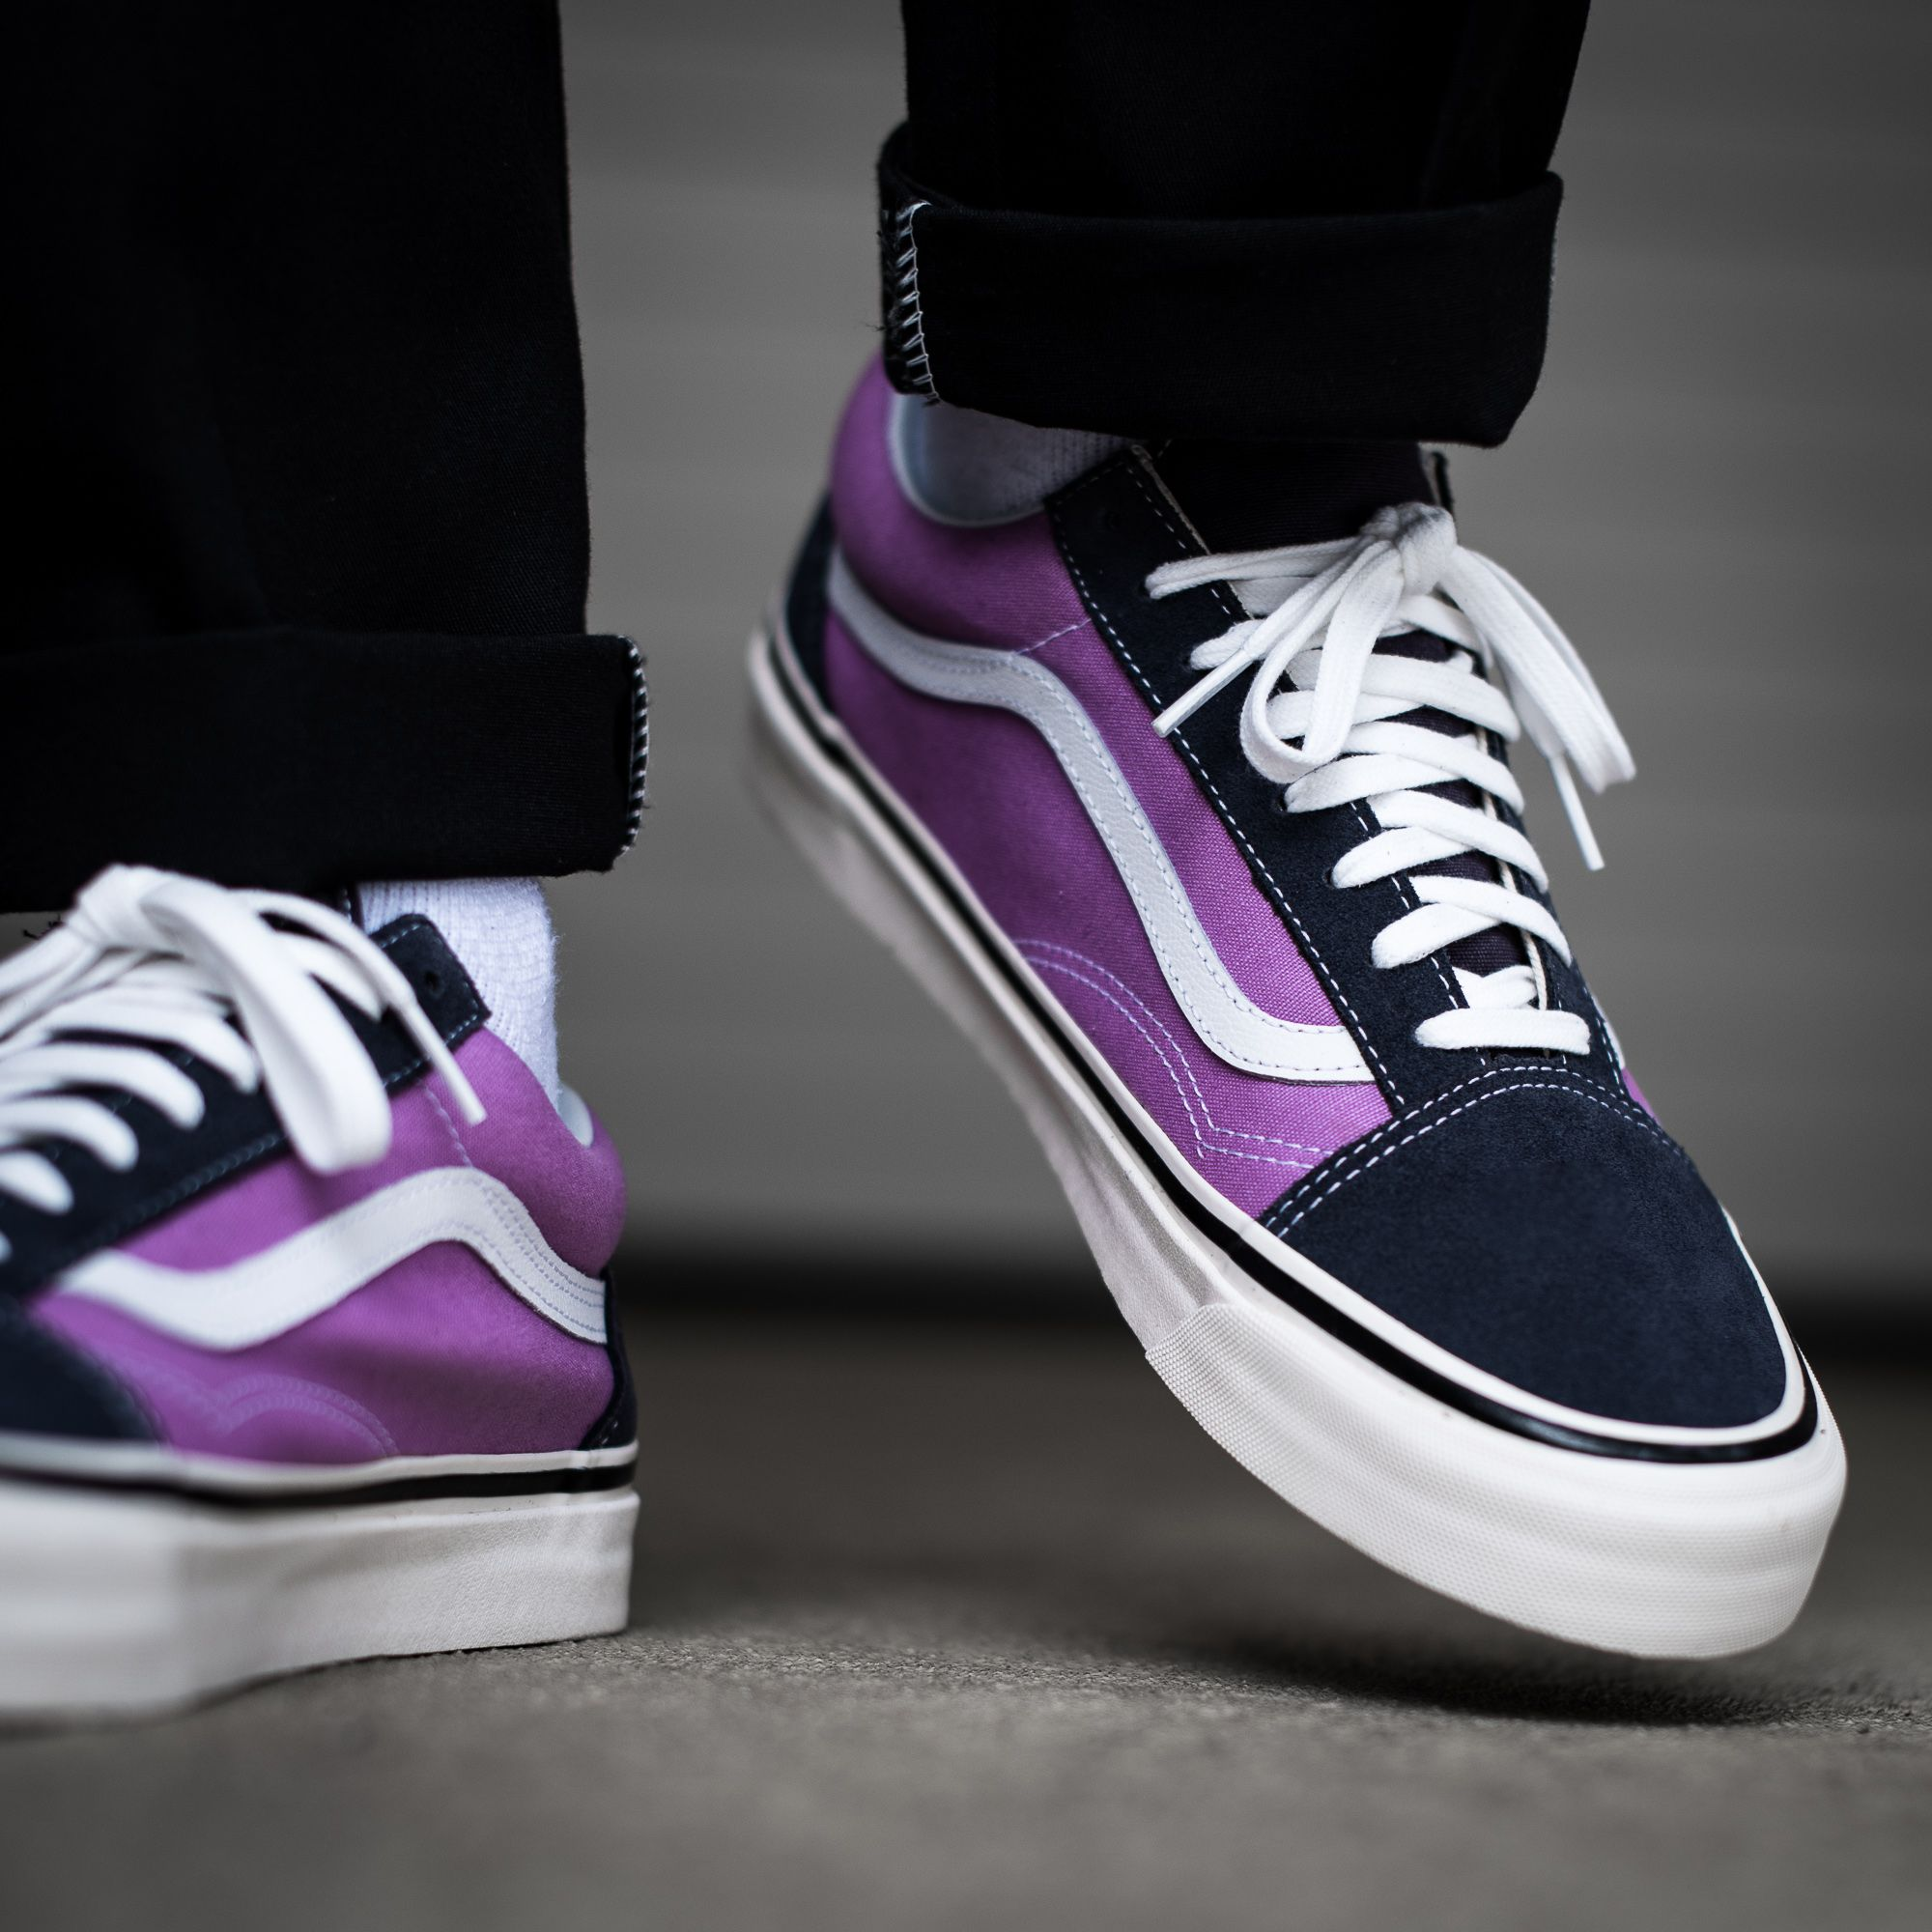 81d0f92c8e655b A purple colorway of the VANS UA OLD SKOOL 36 DX (ANAHEIM FACTORY) is  finally available on kickz.com!